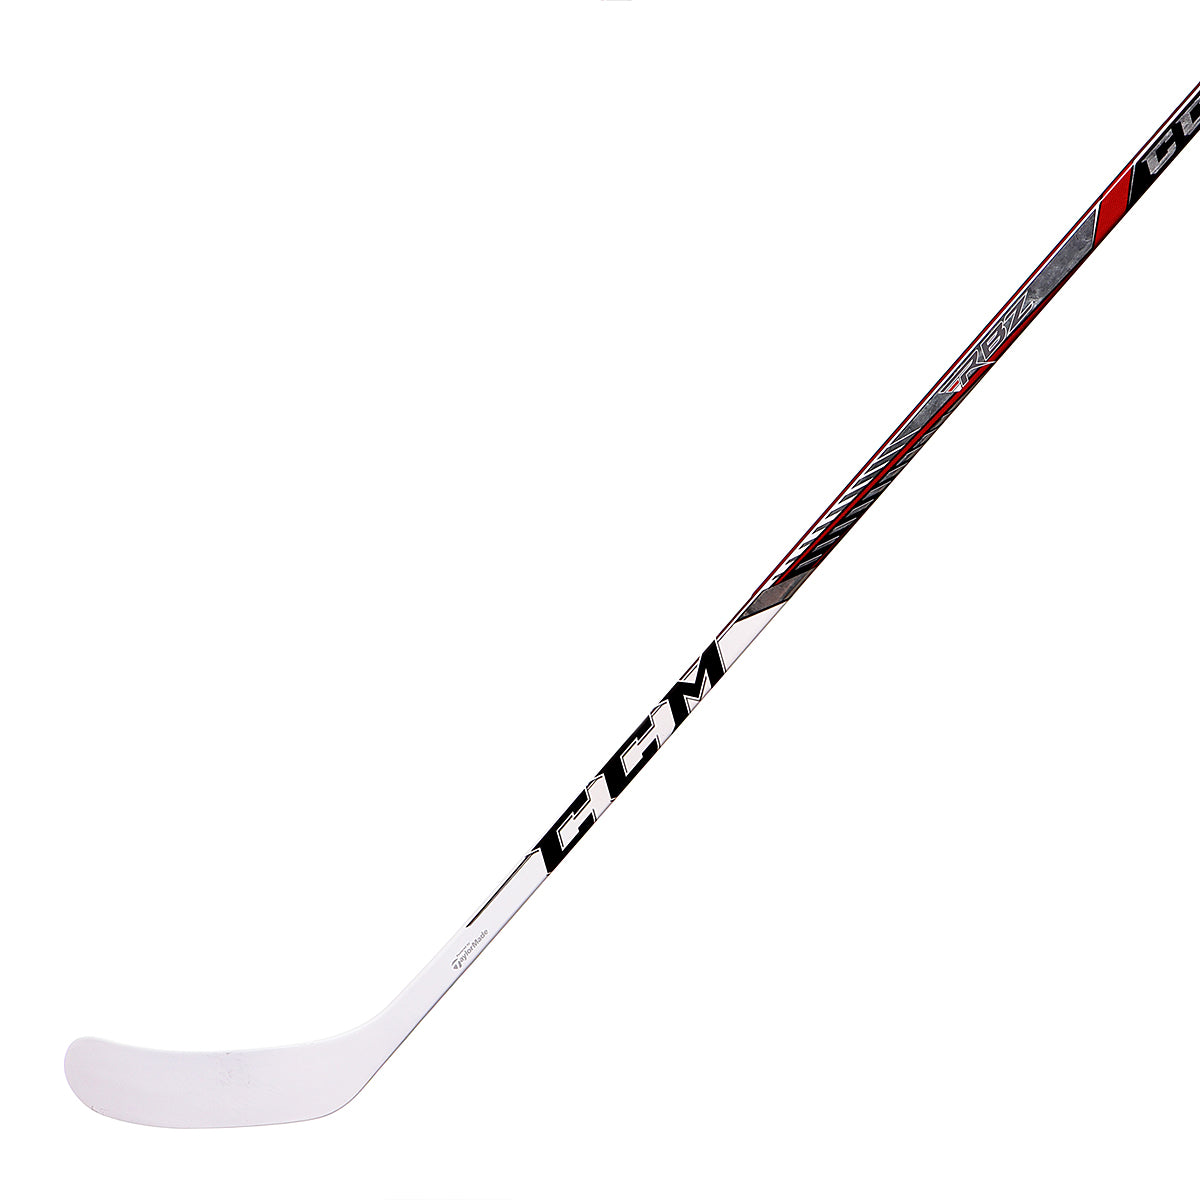 Pro Stock Hockey Sticks Large Selection Best Prices On The Web